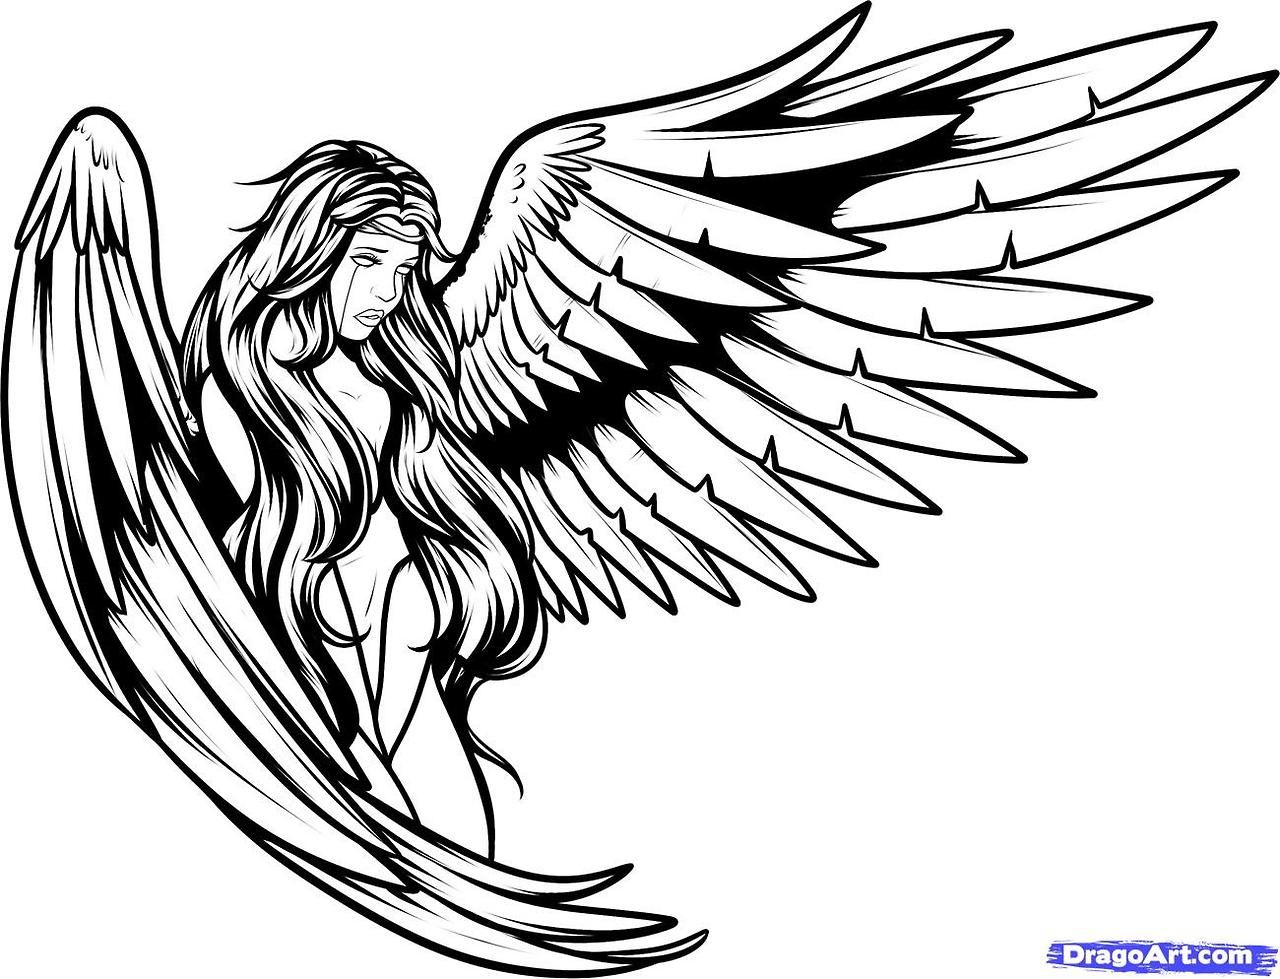 the lost soul tattoos angel designs wings tattoo angel tattoos pinterest soul. Black Bedroom Furniture Sets. Home Design Ideas